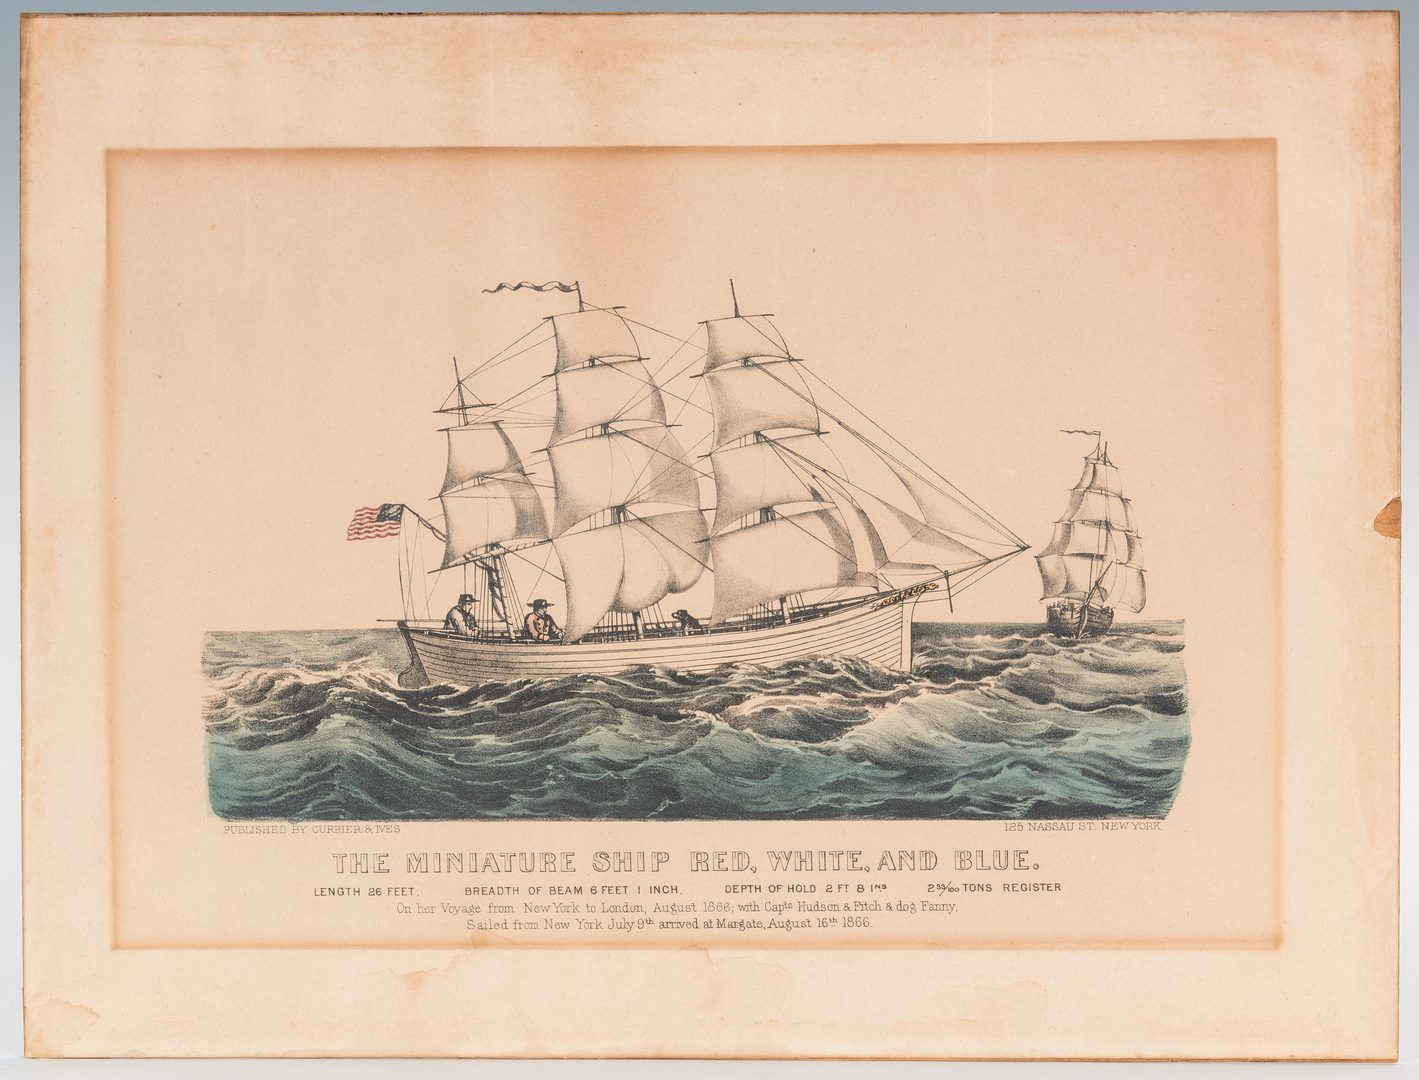 Lot 359: Nautical Archive, Ship Horn of The Red White & Blue